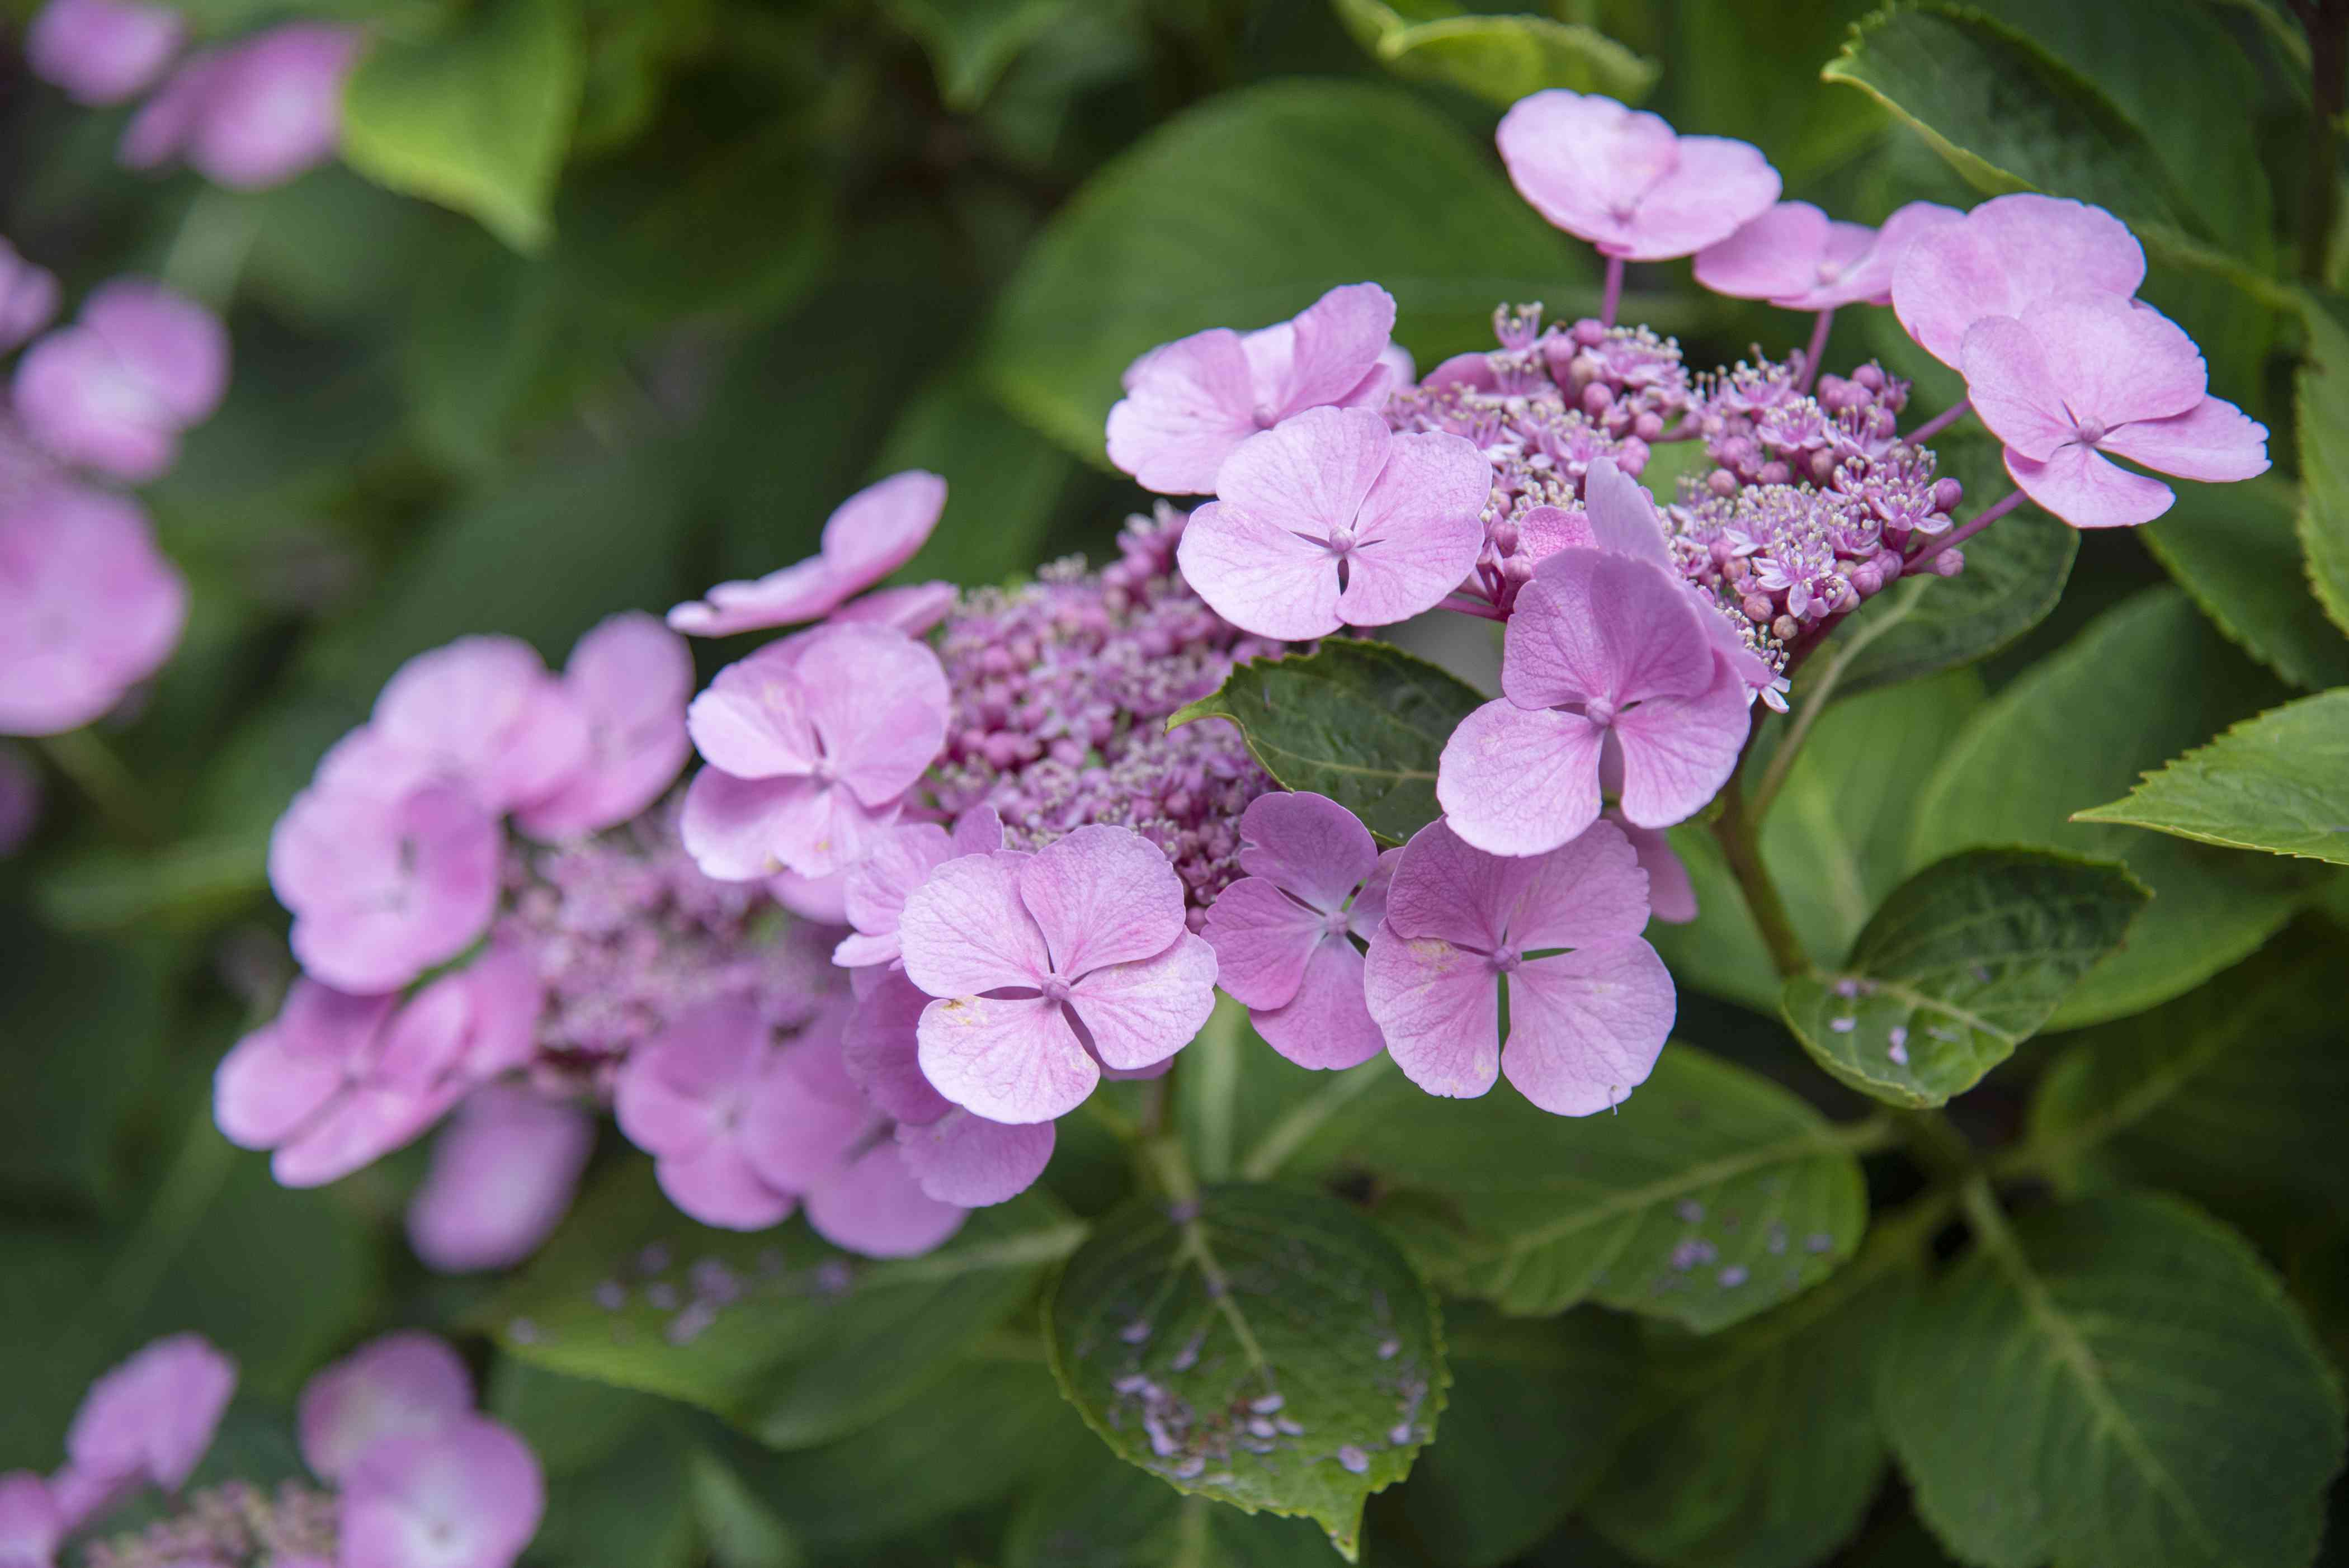 Lacecap hydrangea shrub branches with pink flashy petals clustered together closeup